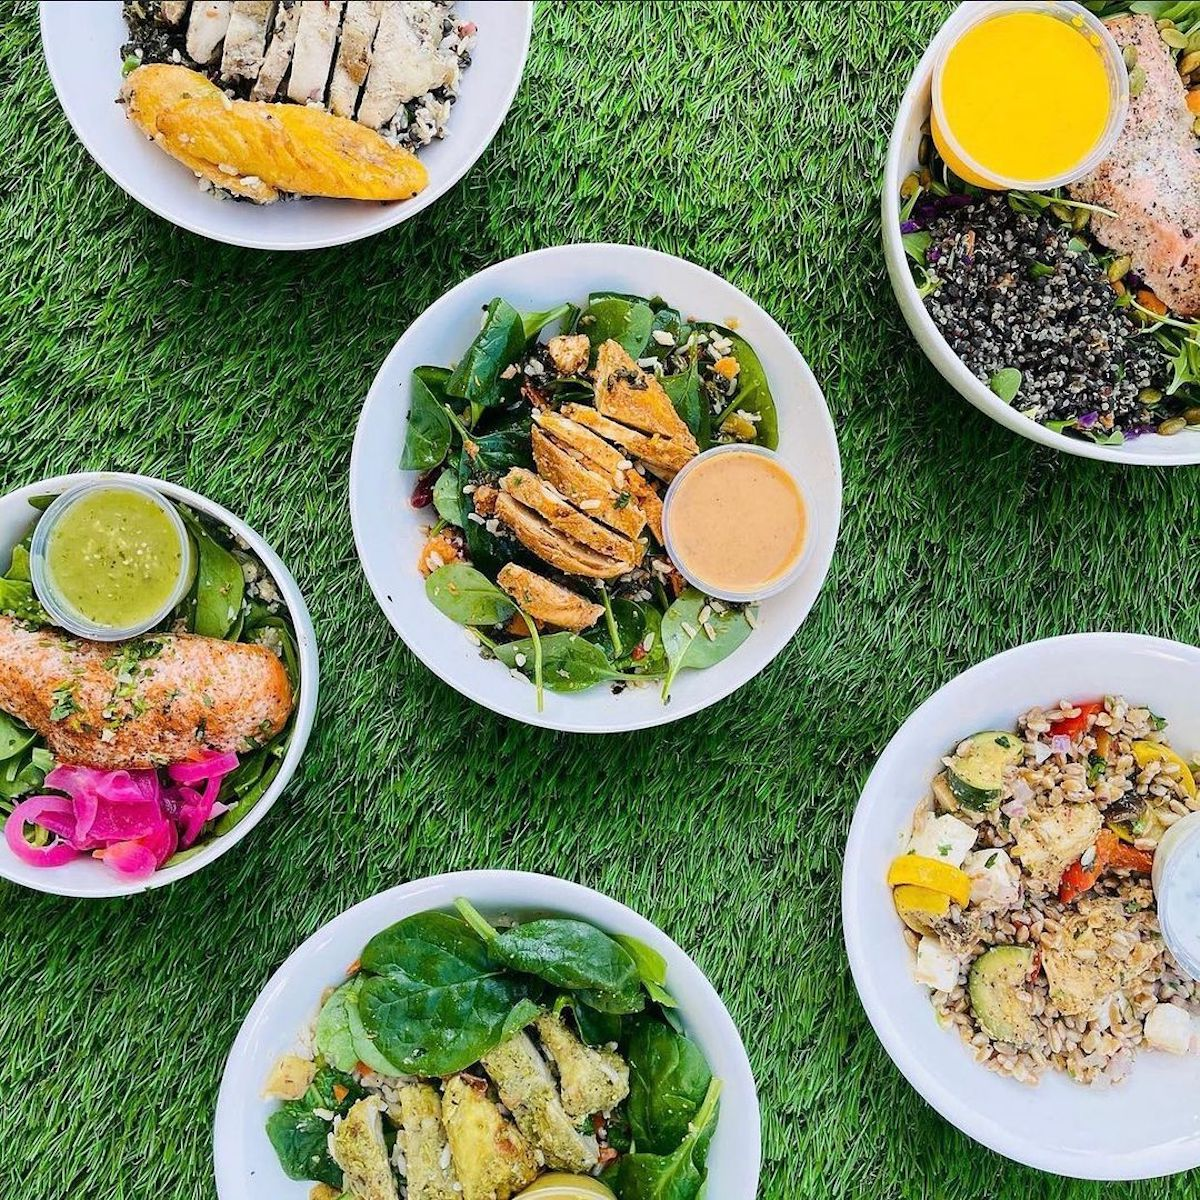 Everytable to Open Grab-and-go Storefronts in San Diego